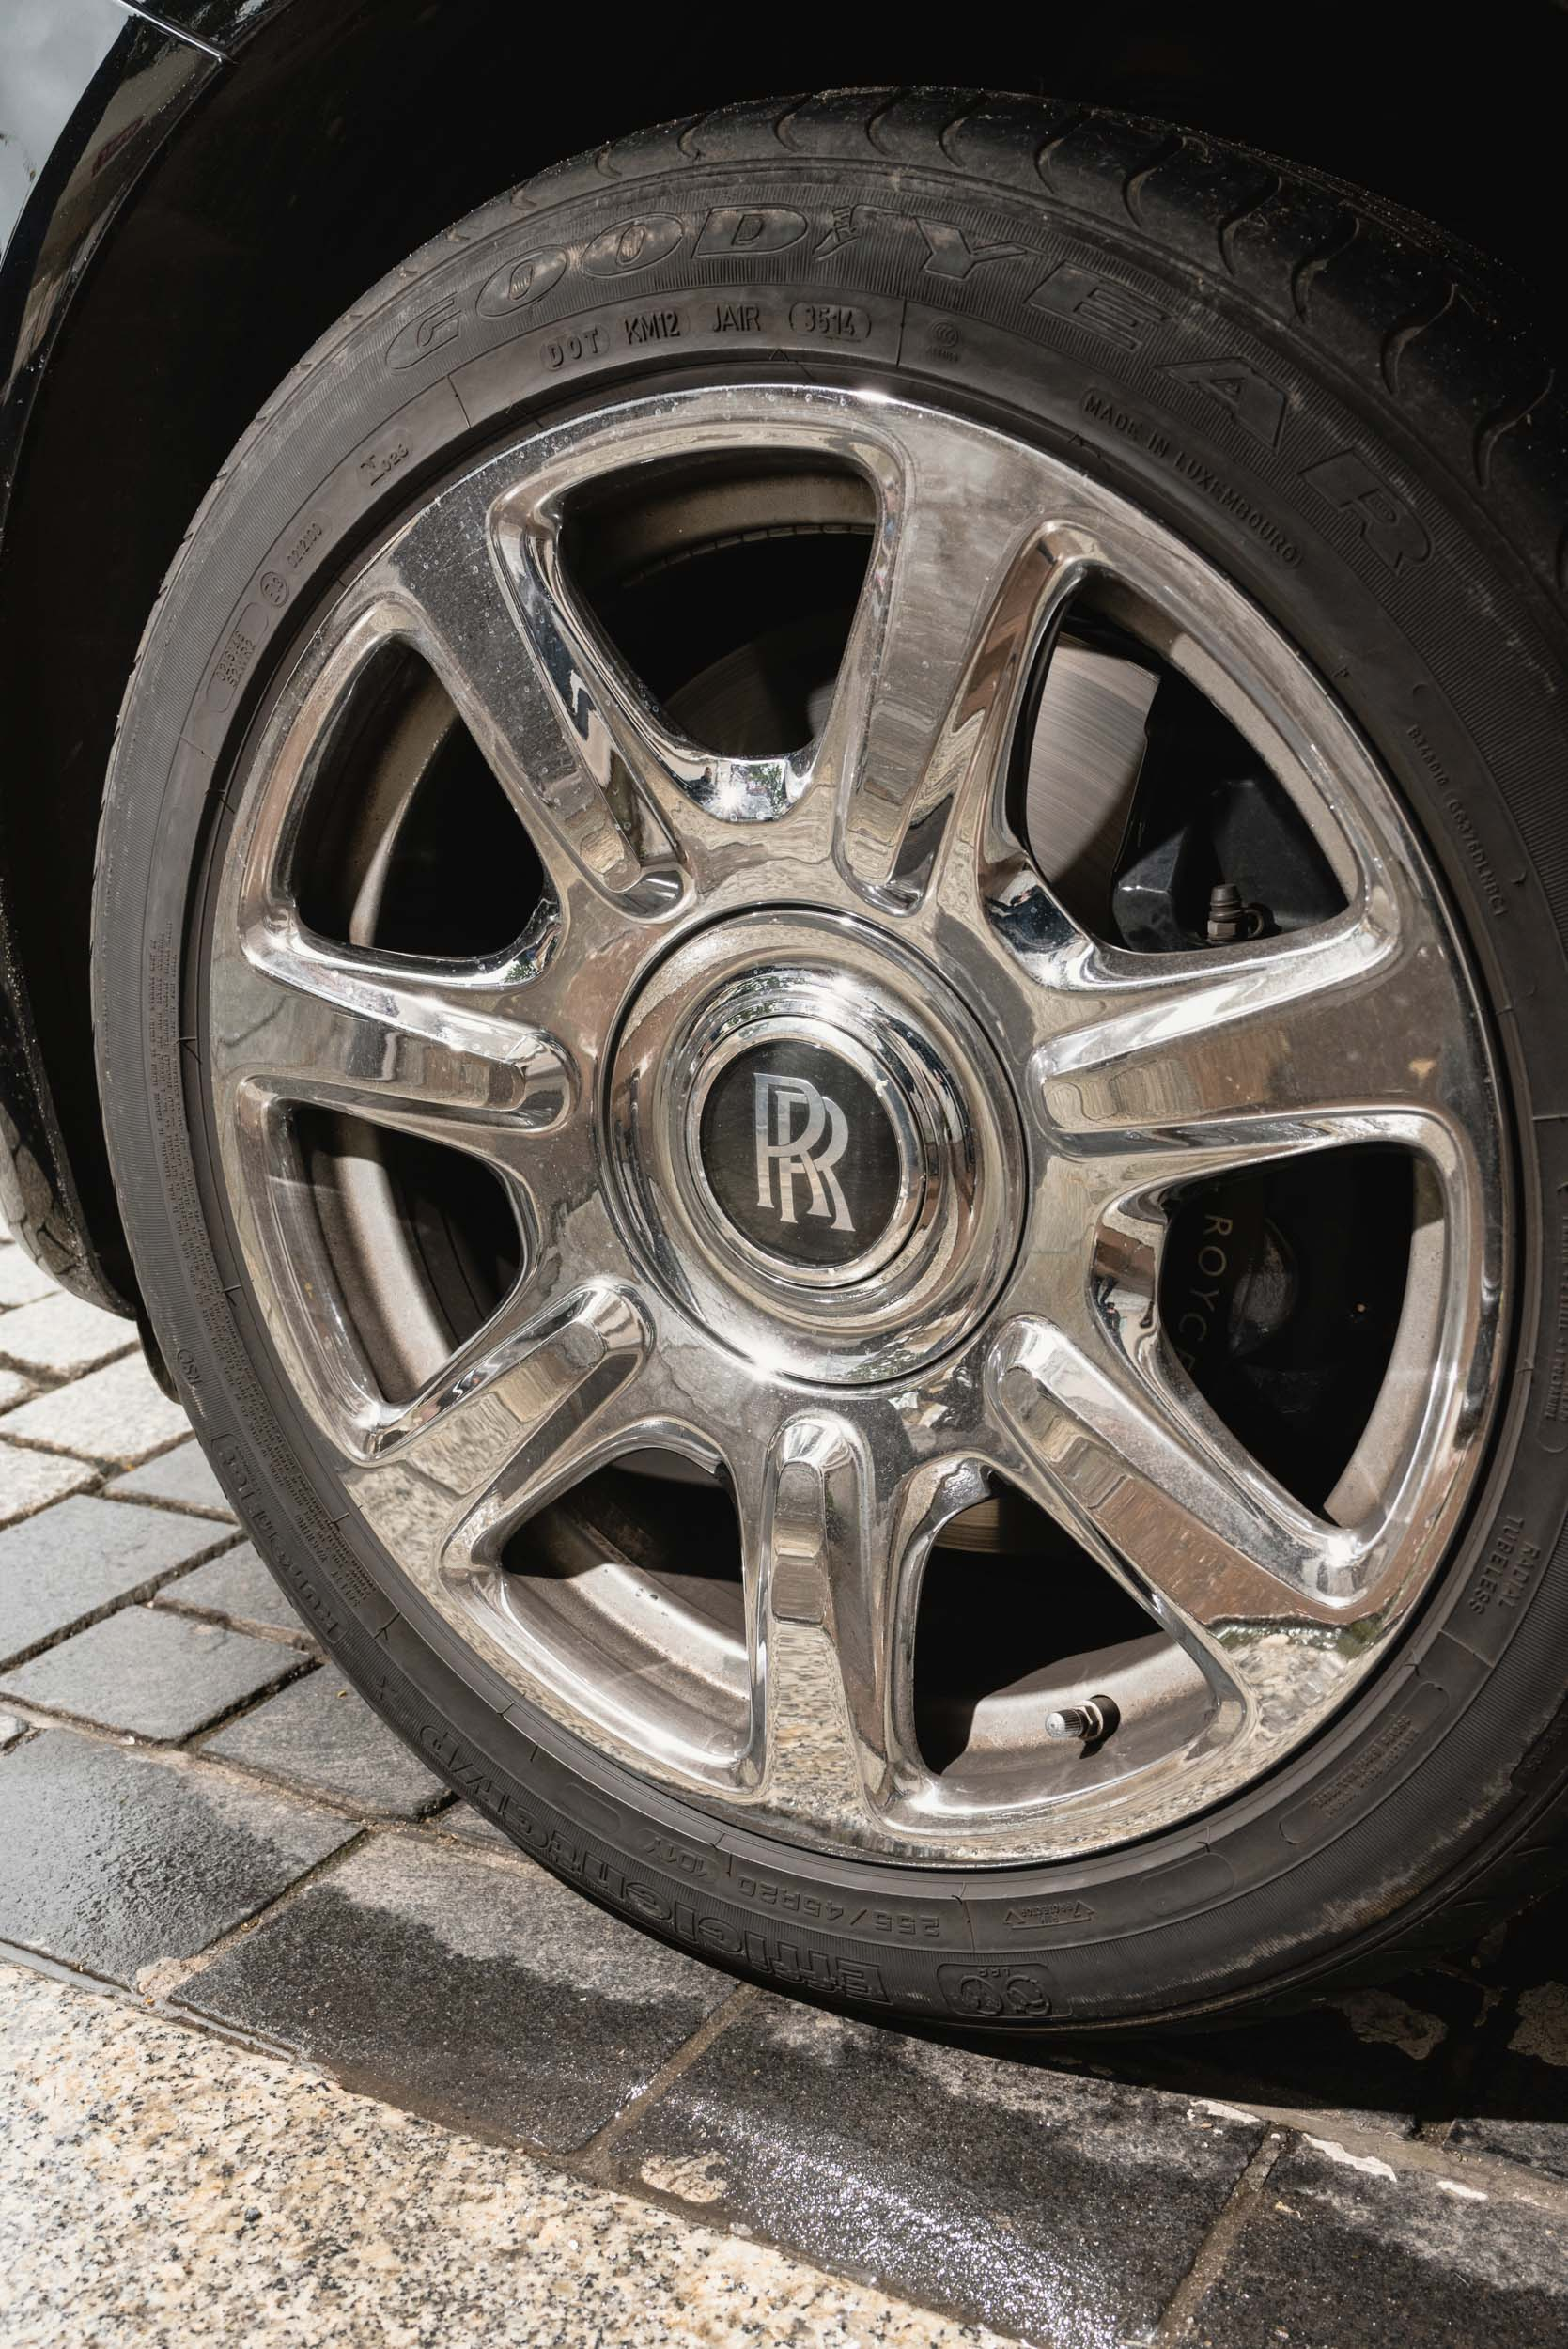 Rols Royce Wheel